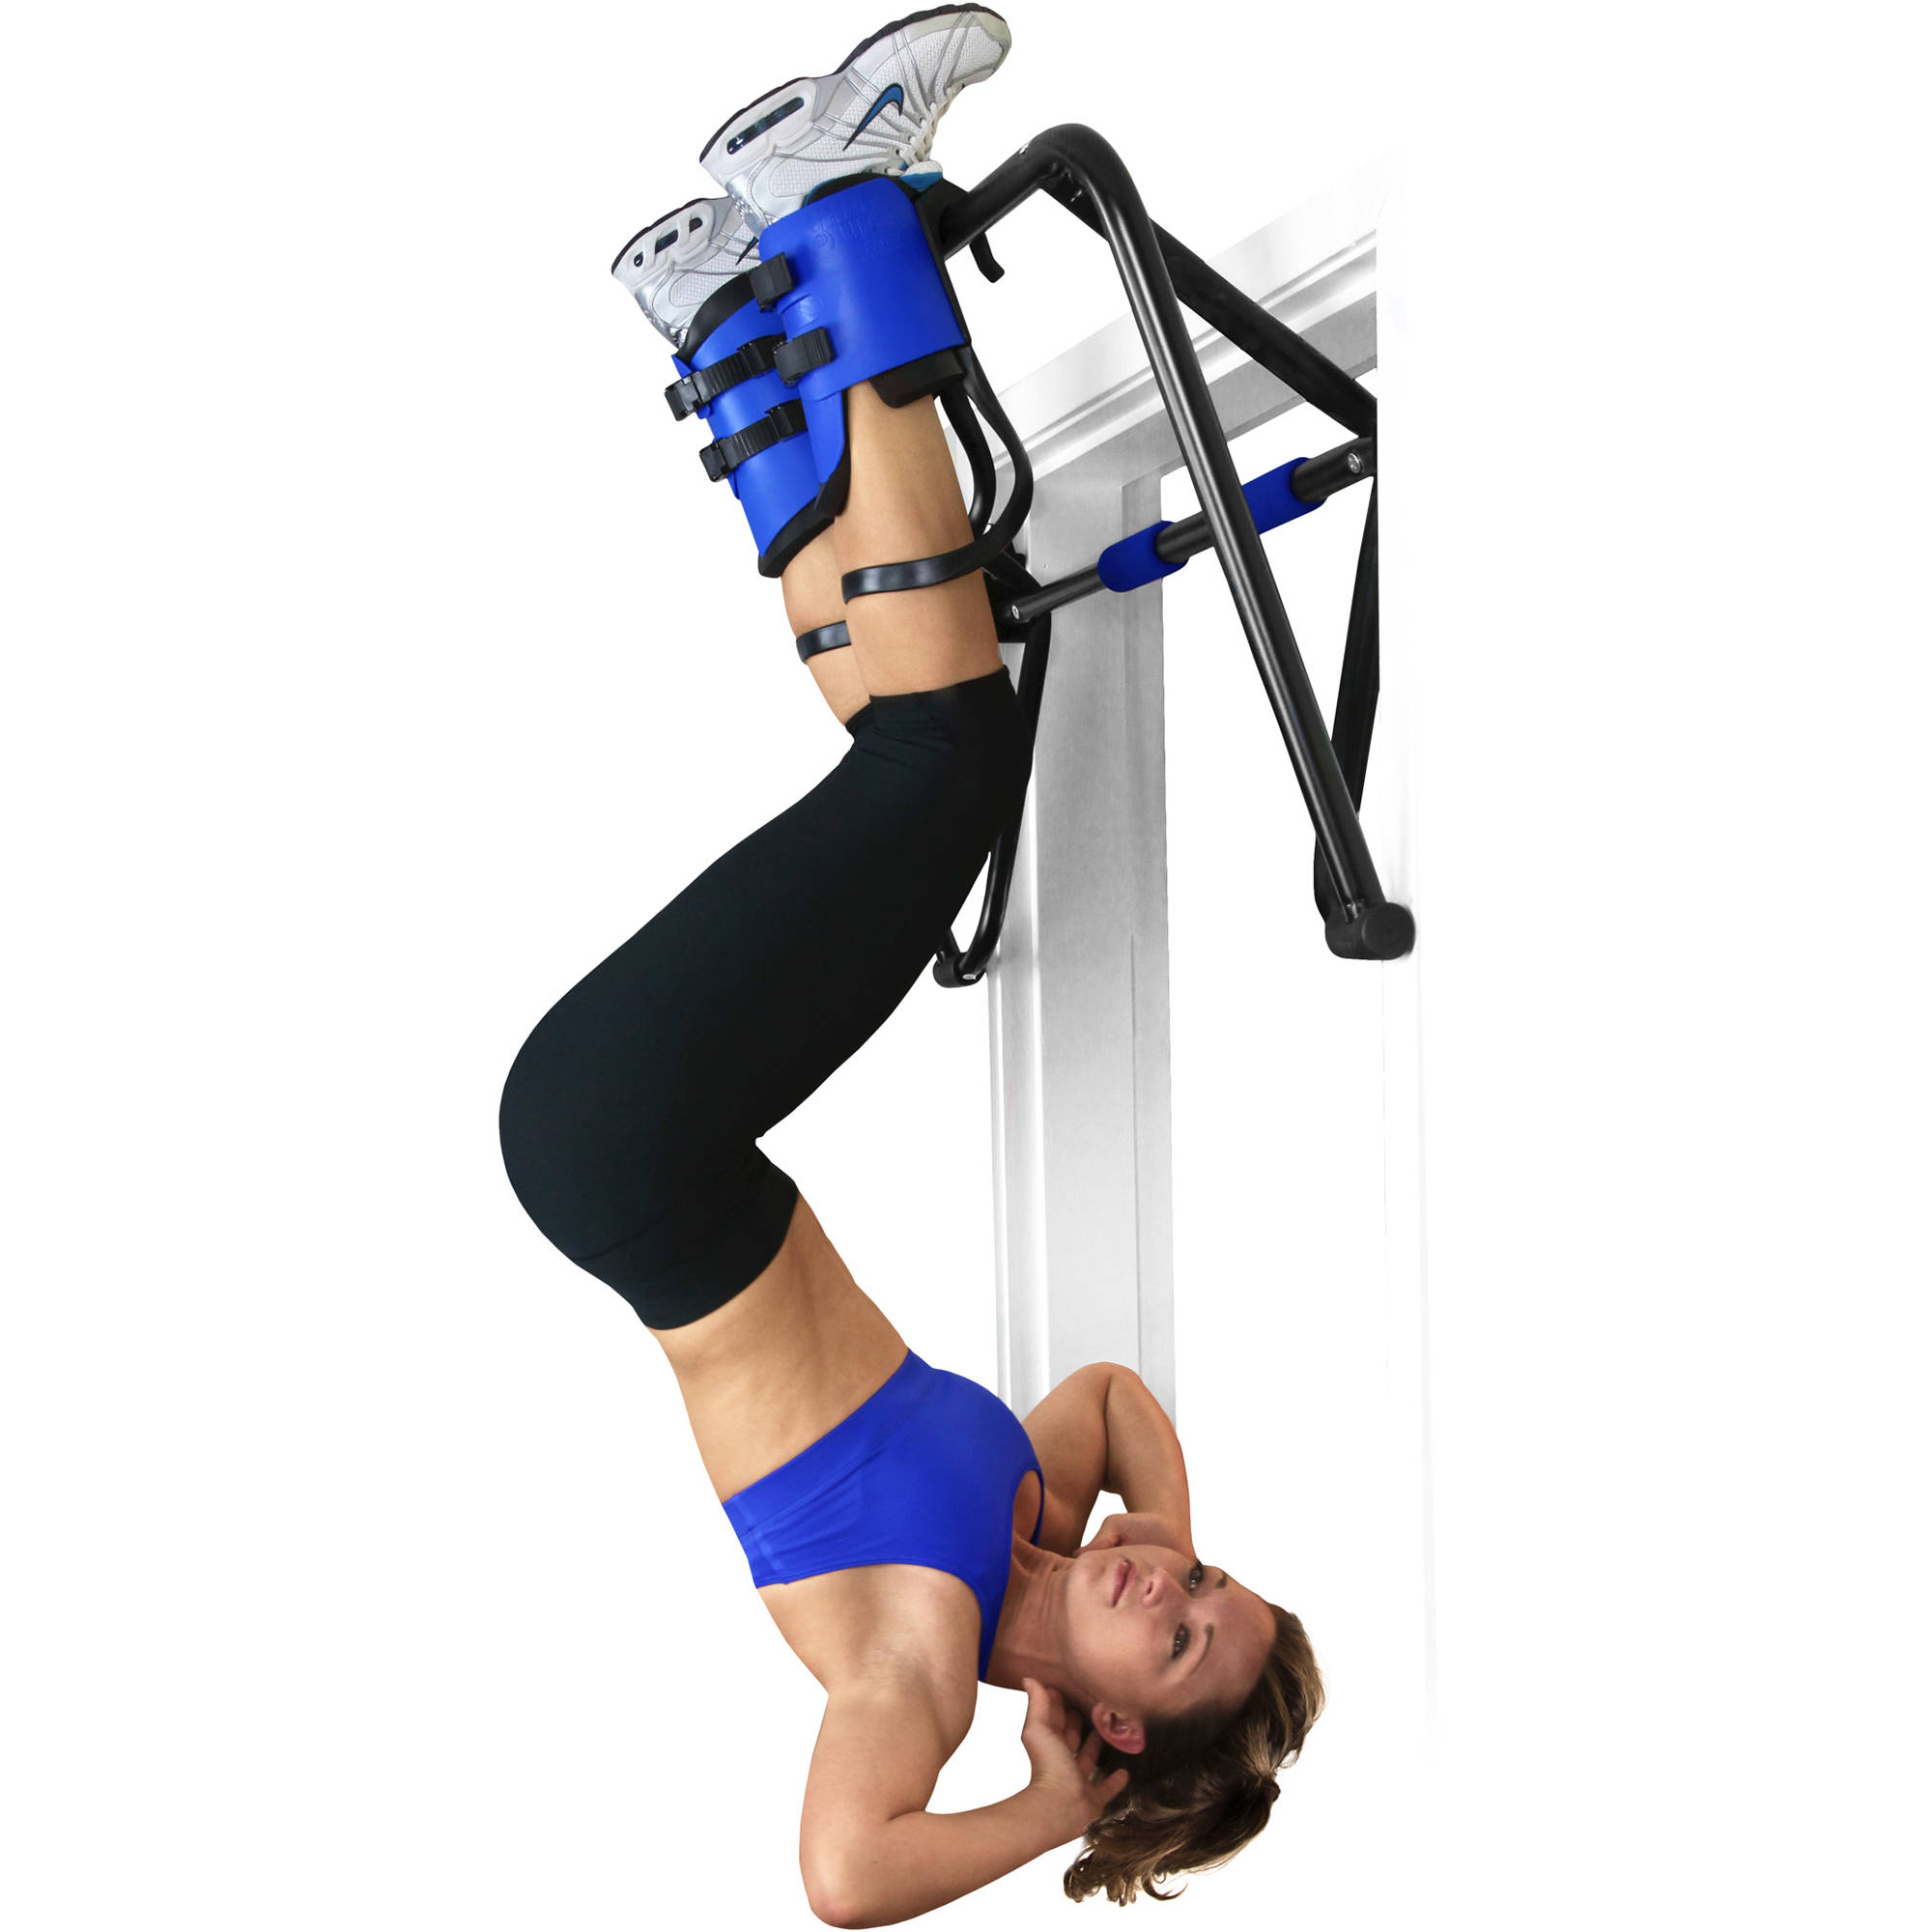 Inverted Sit Up Bench 28 Images Best 10 Sit Up Bench Review Buyer S Guide For Ab Benches